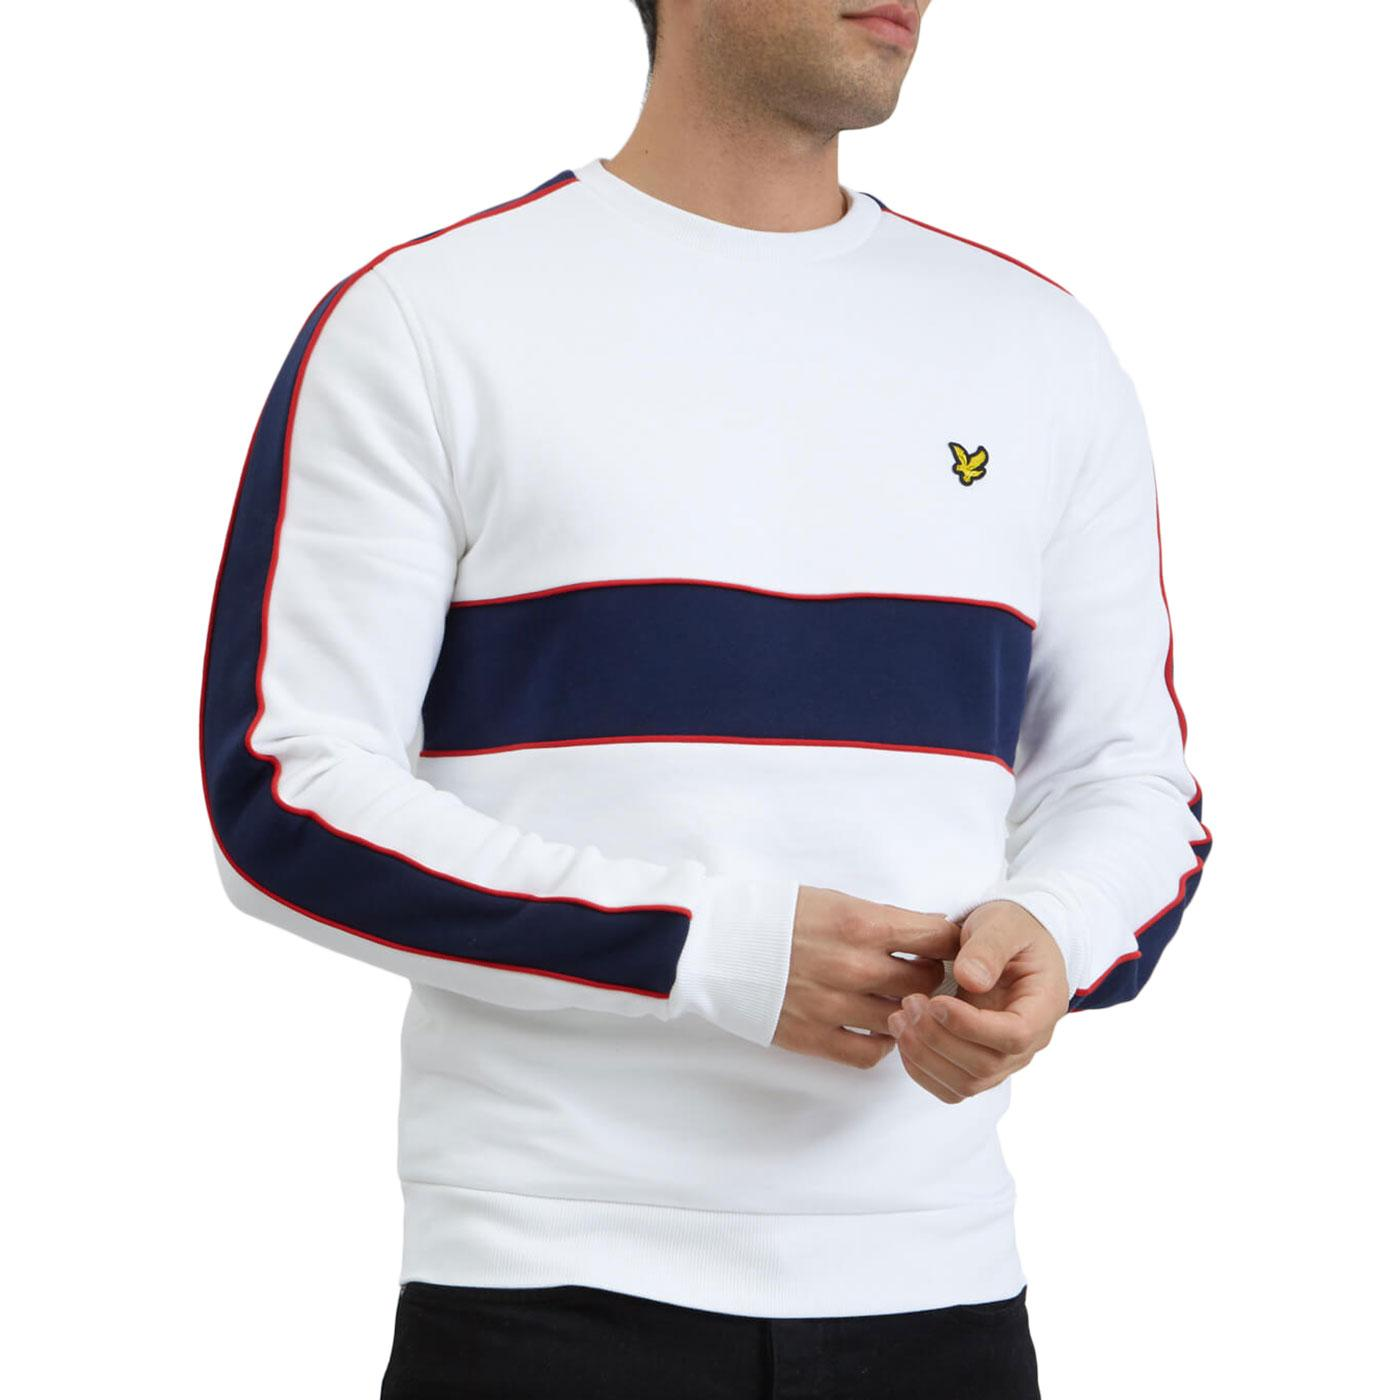 LYLE & SCOTT Retro 80s Cut & Sew Sweatshirt WHITE